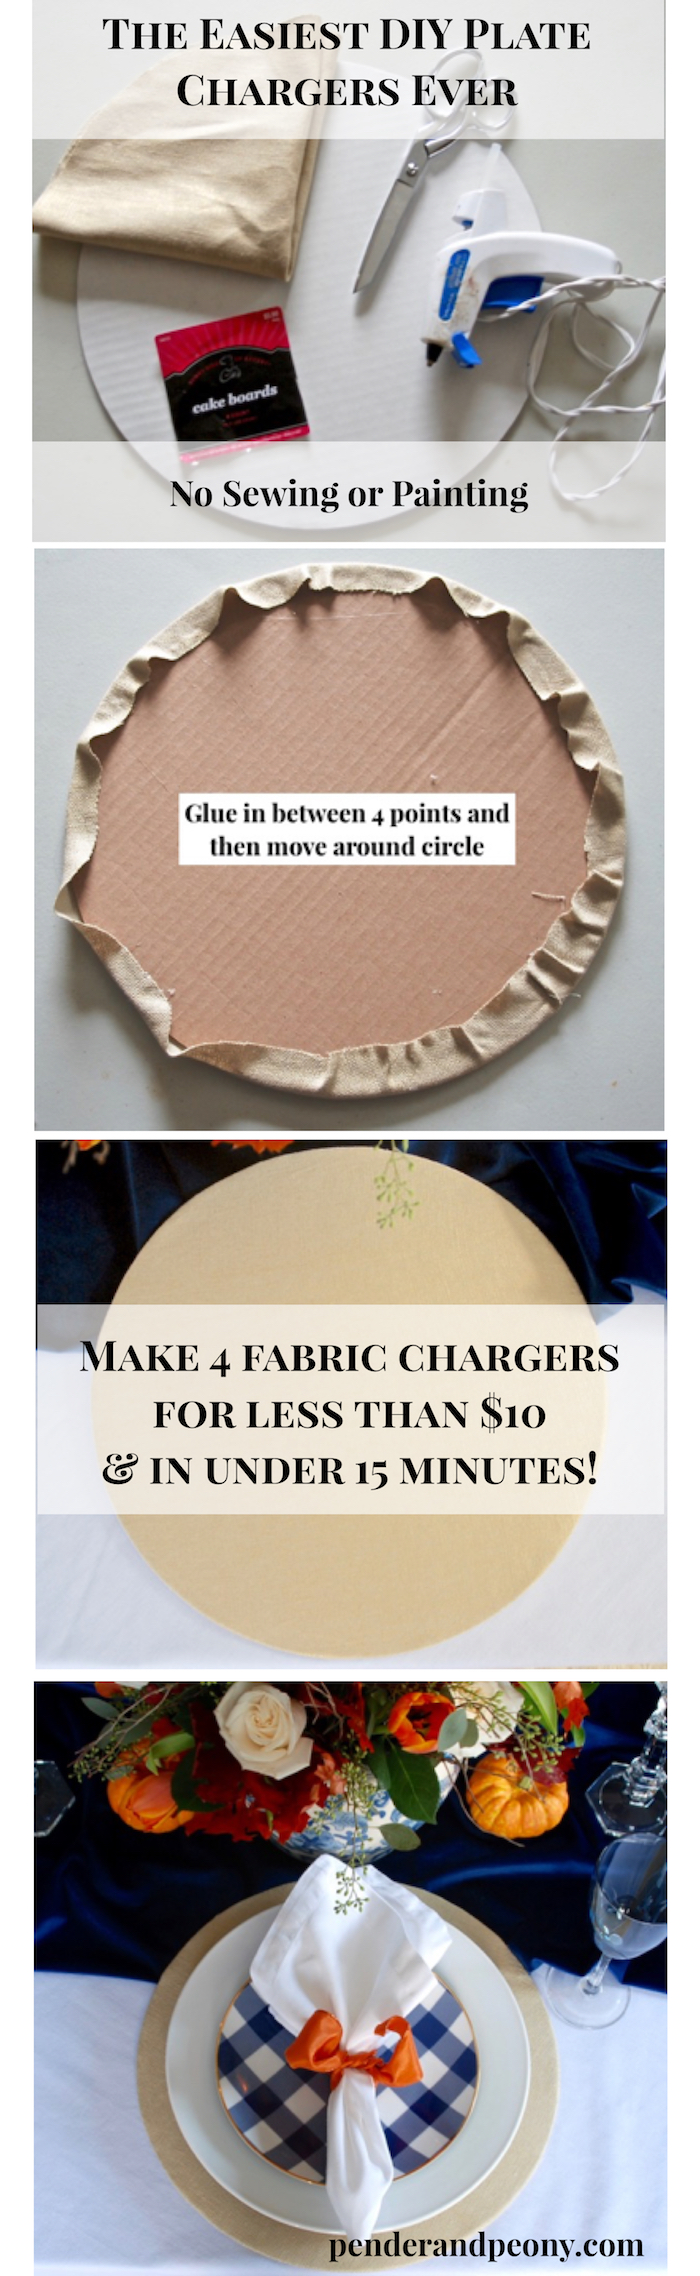 Make 4 fabric chargers for less than $10 and in under 15 minutes! #DIY #platechargers #tablescape #tabledecor